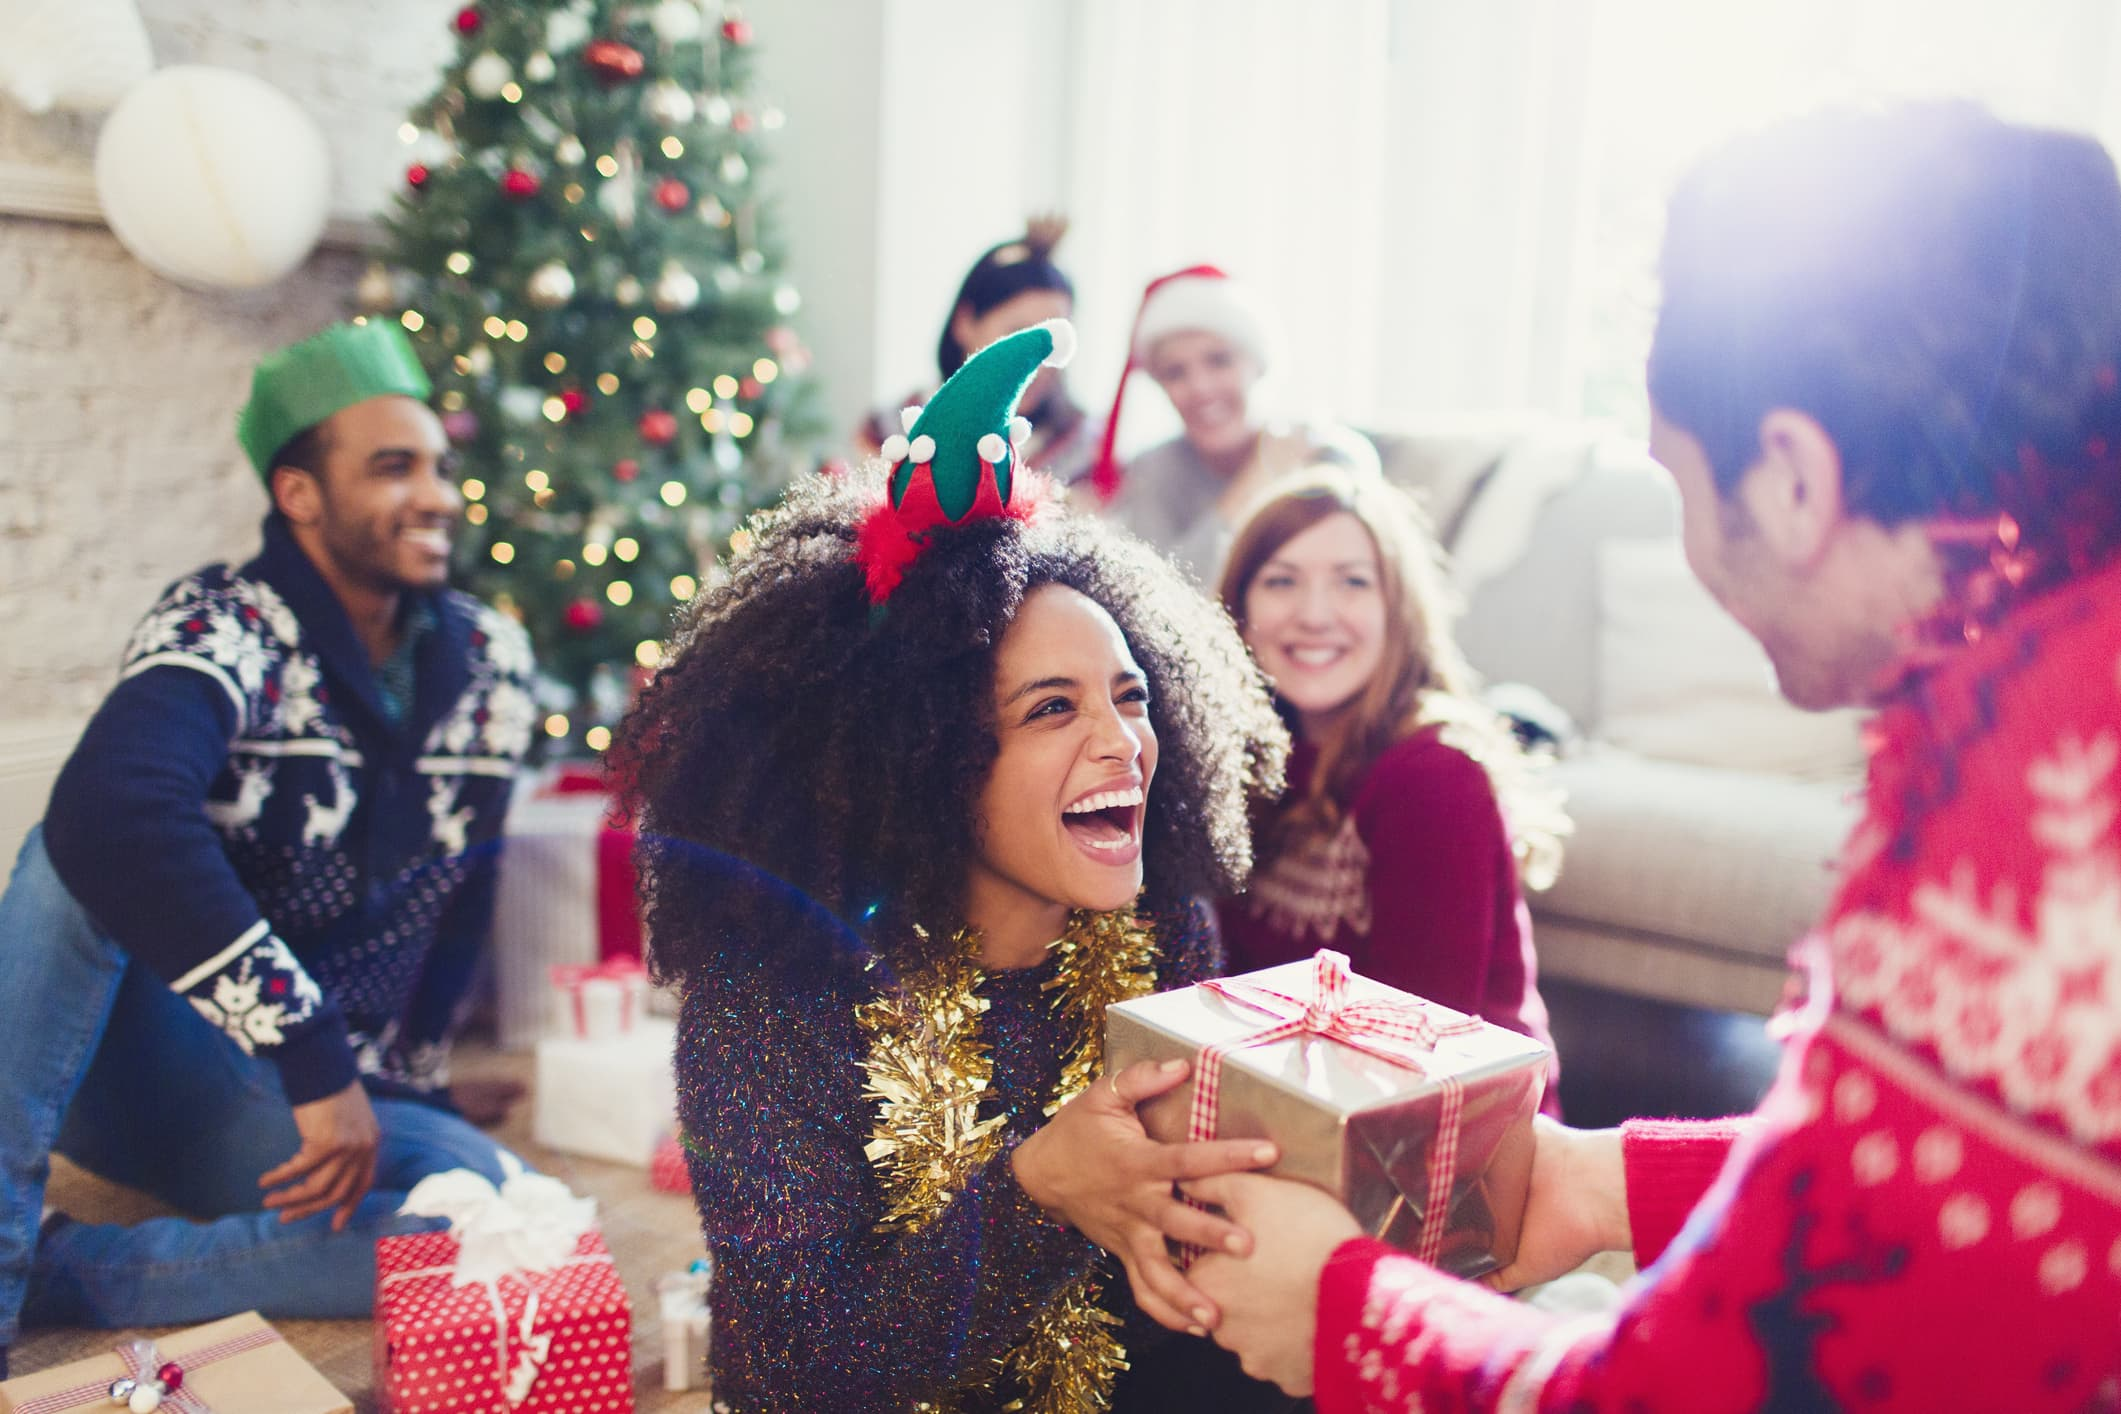 Holiday etiquette: The top 10 rules for gift-giving this holiday season